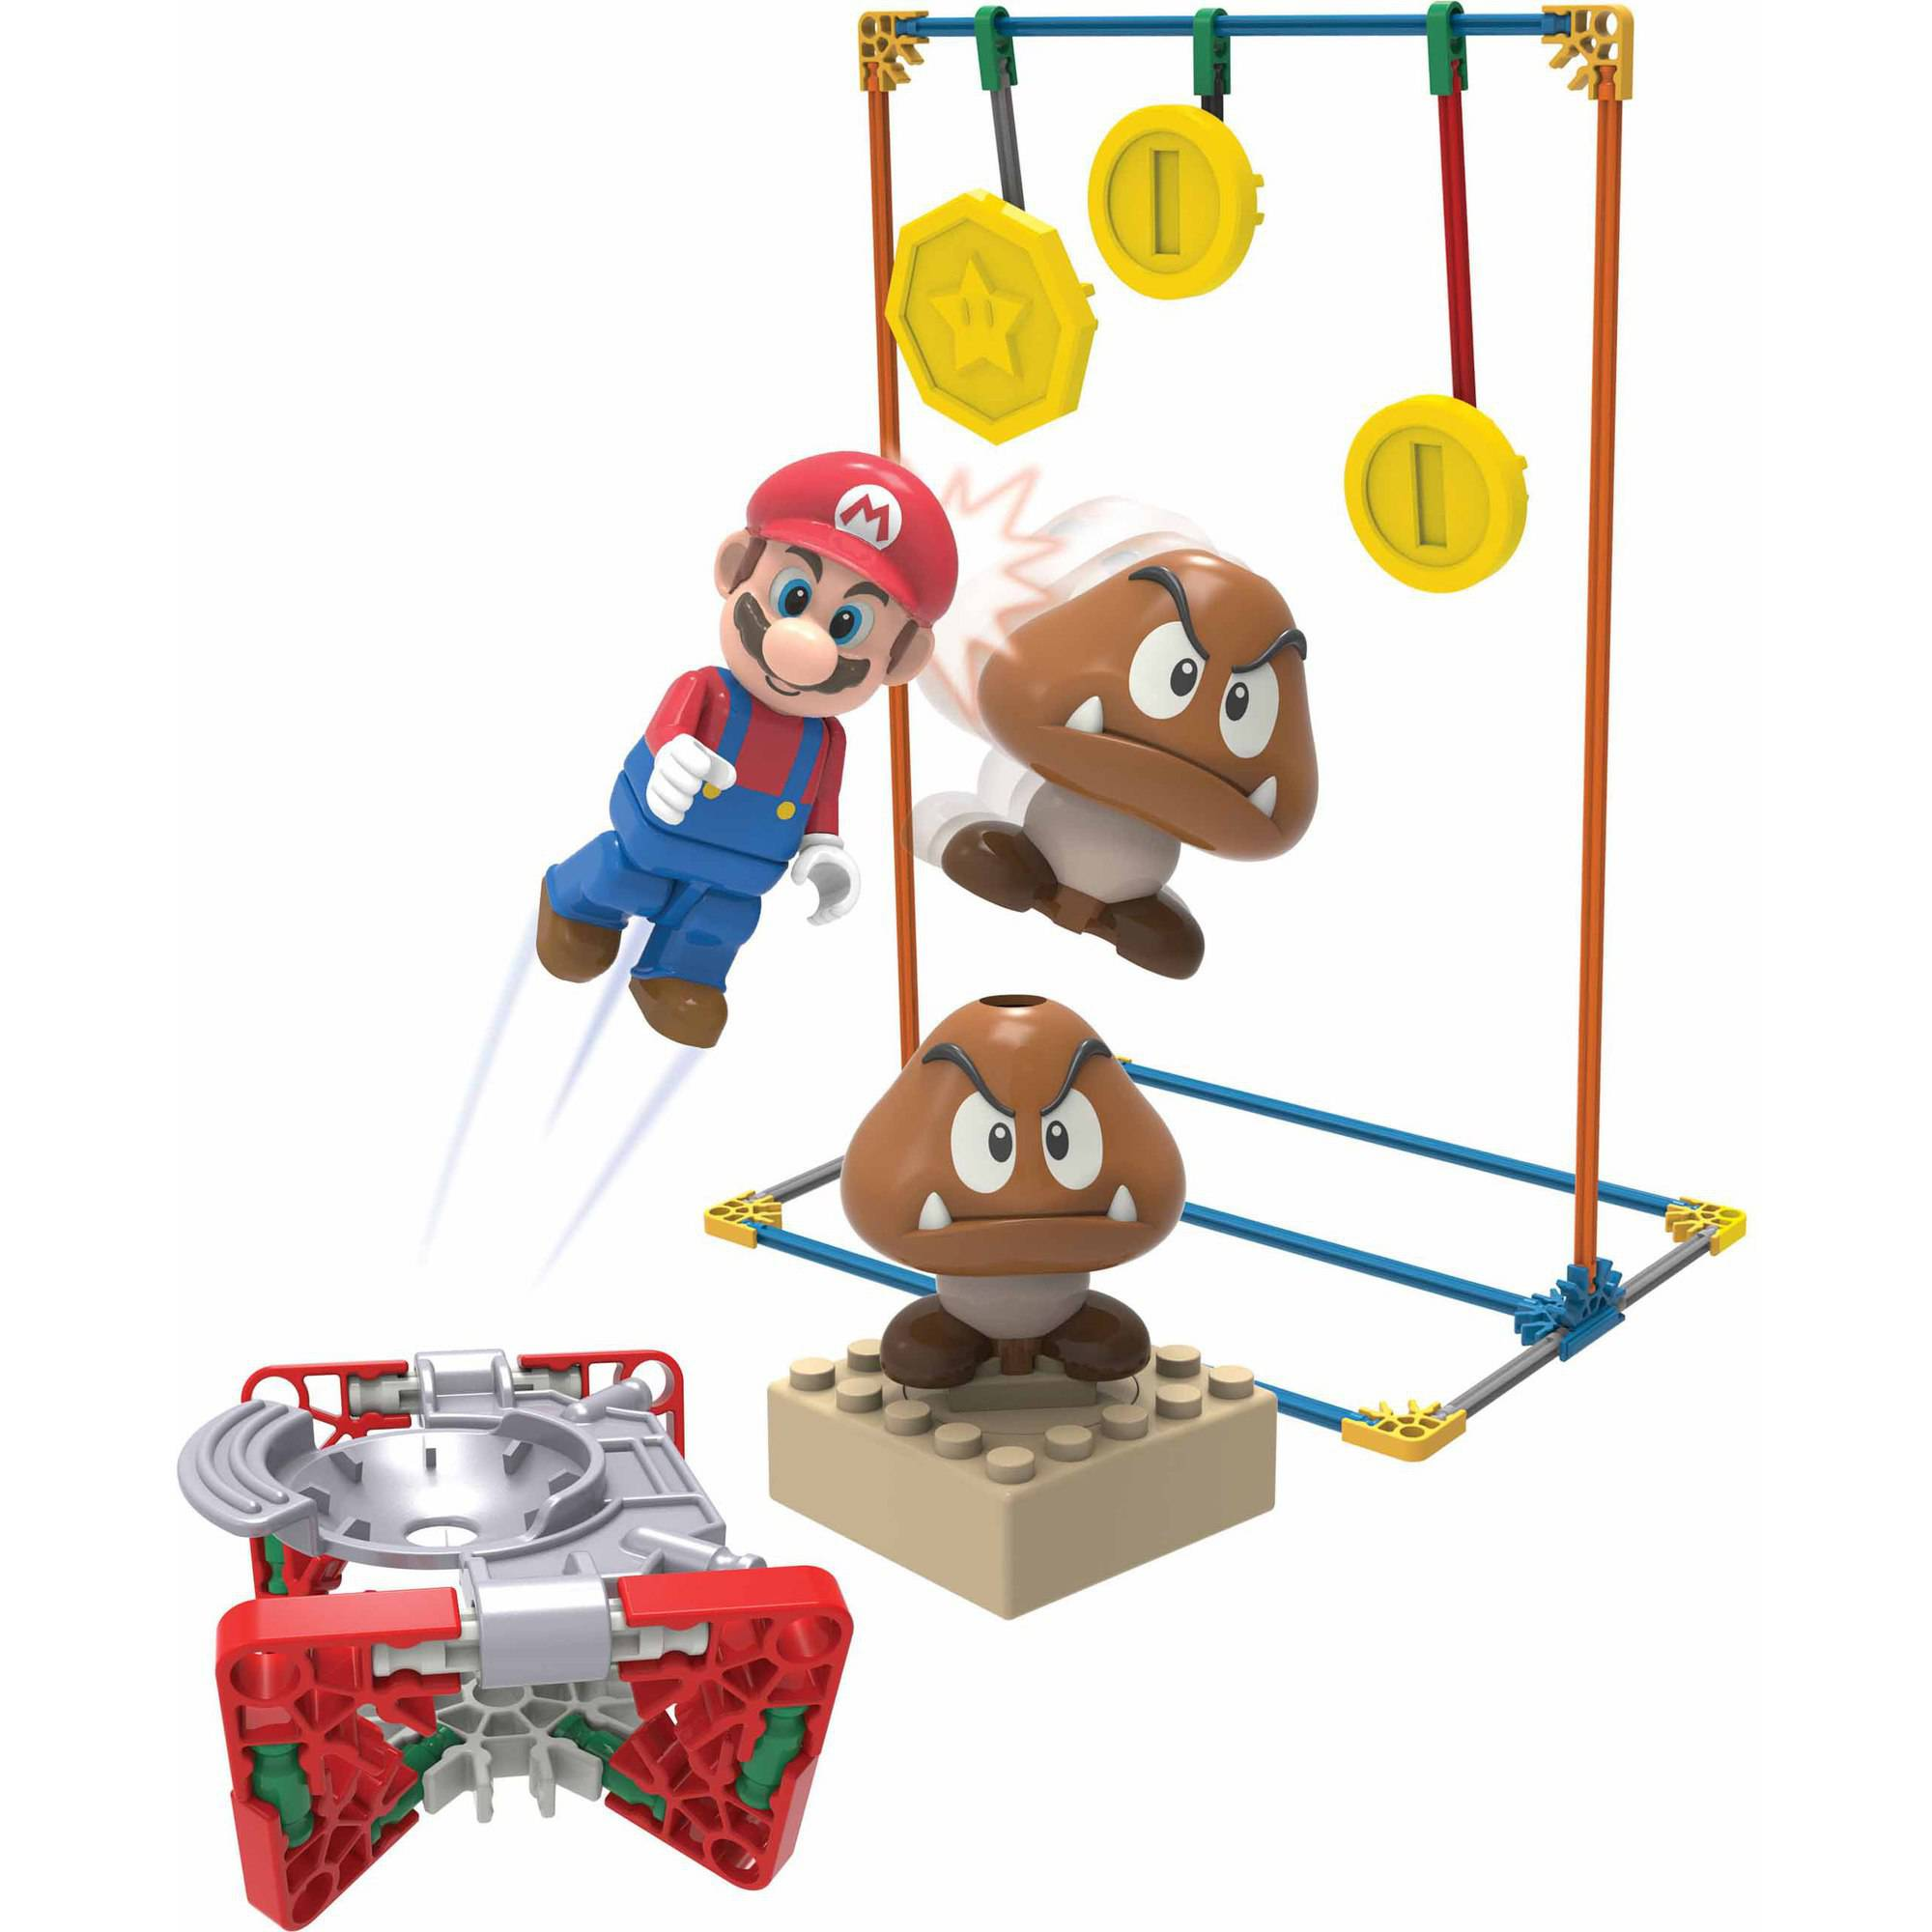 K'NEX Super Mario Stacked Goombas Building Set